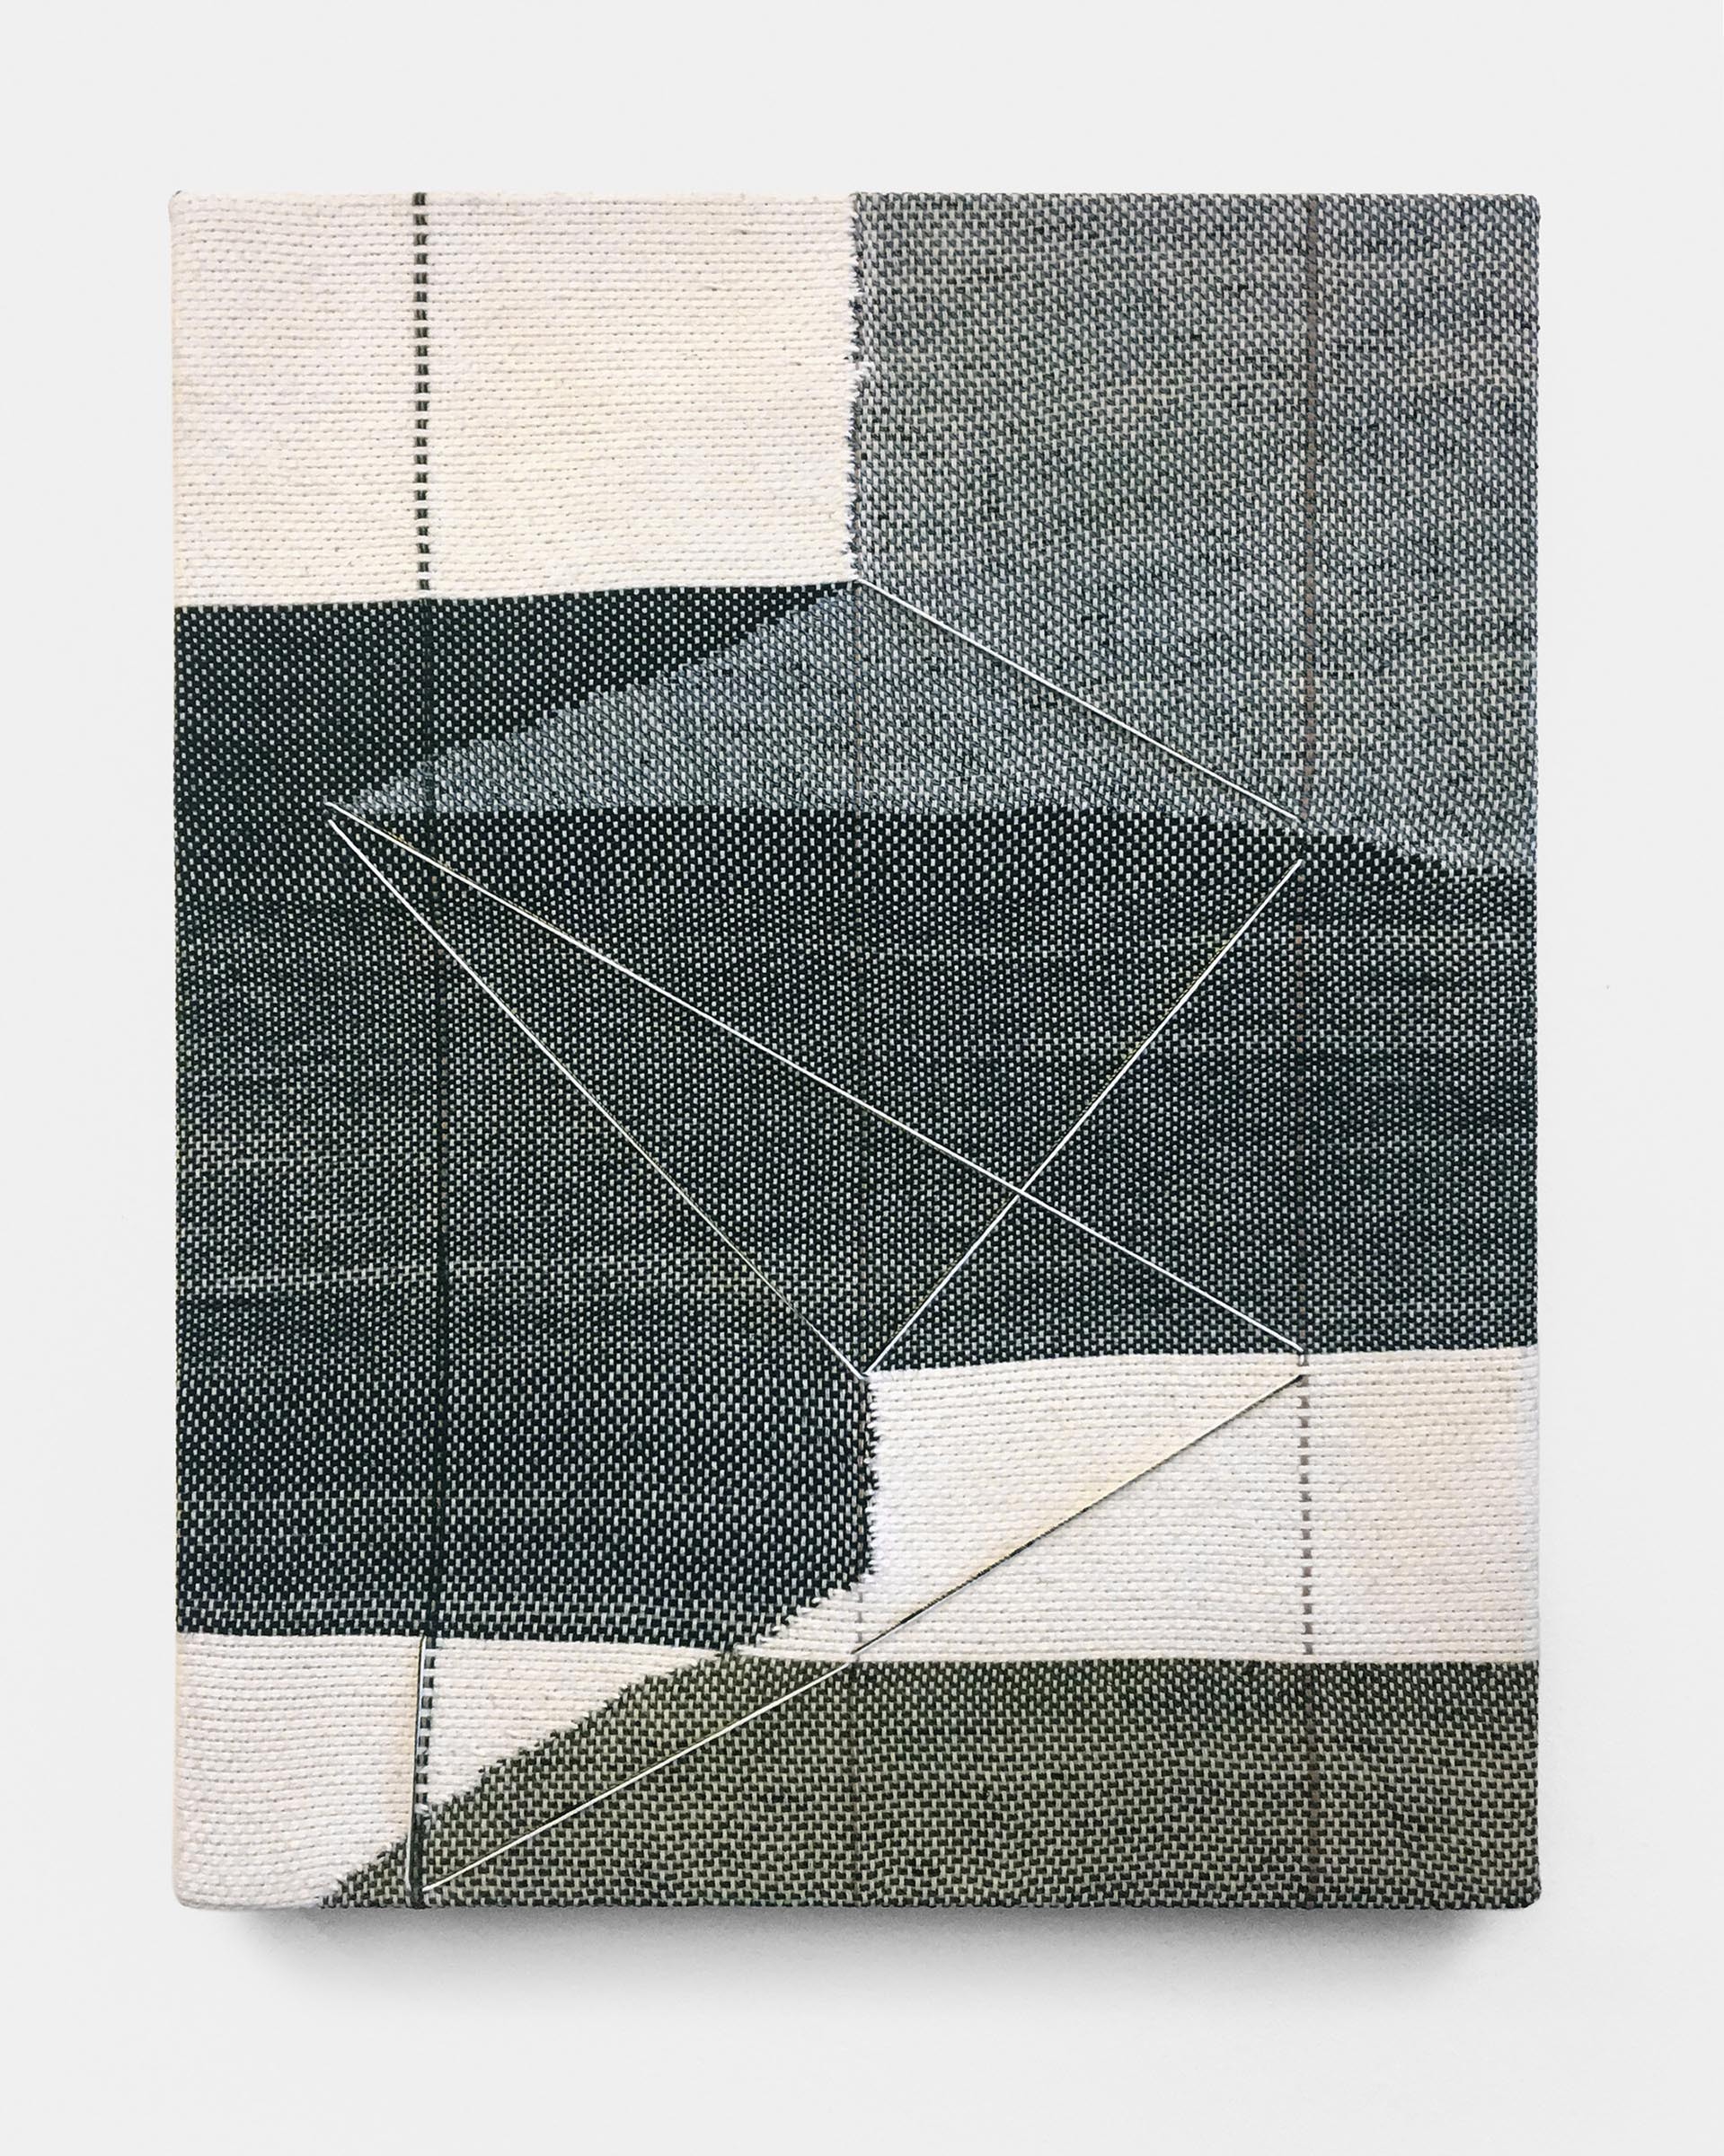 Mary Raap, The Slip, Handwoven cotton, silk, and acrylic medium over canvas, 18 x 14 x 1.5 in, 2019